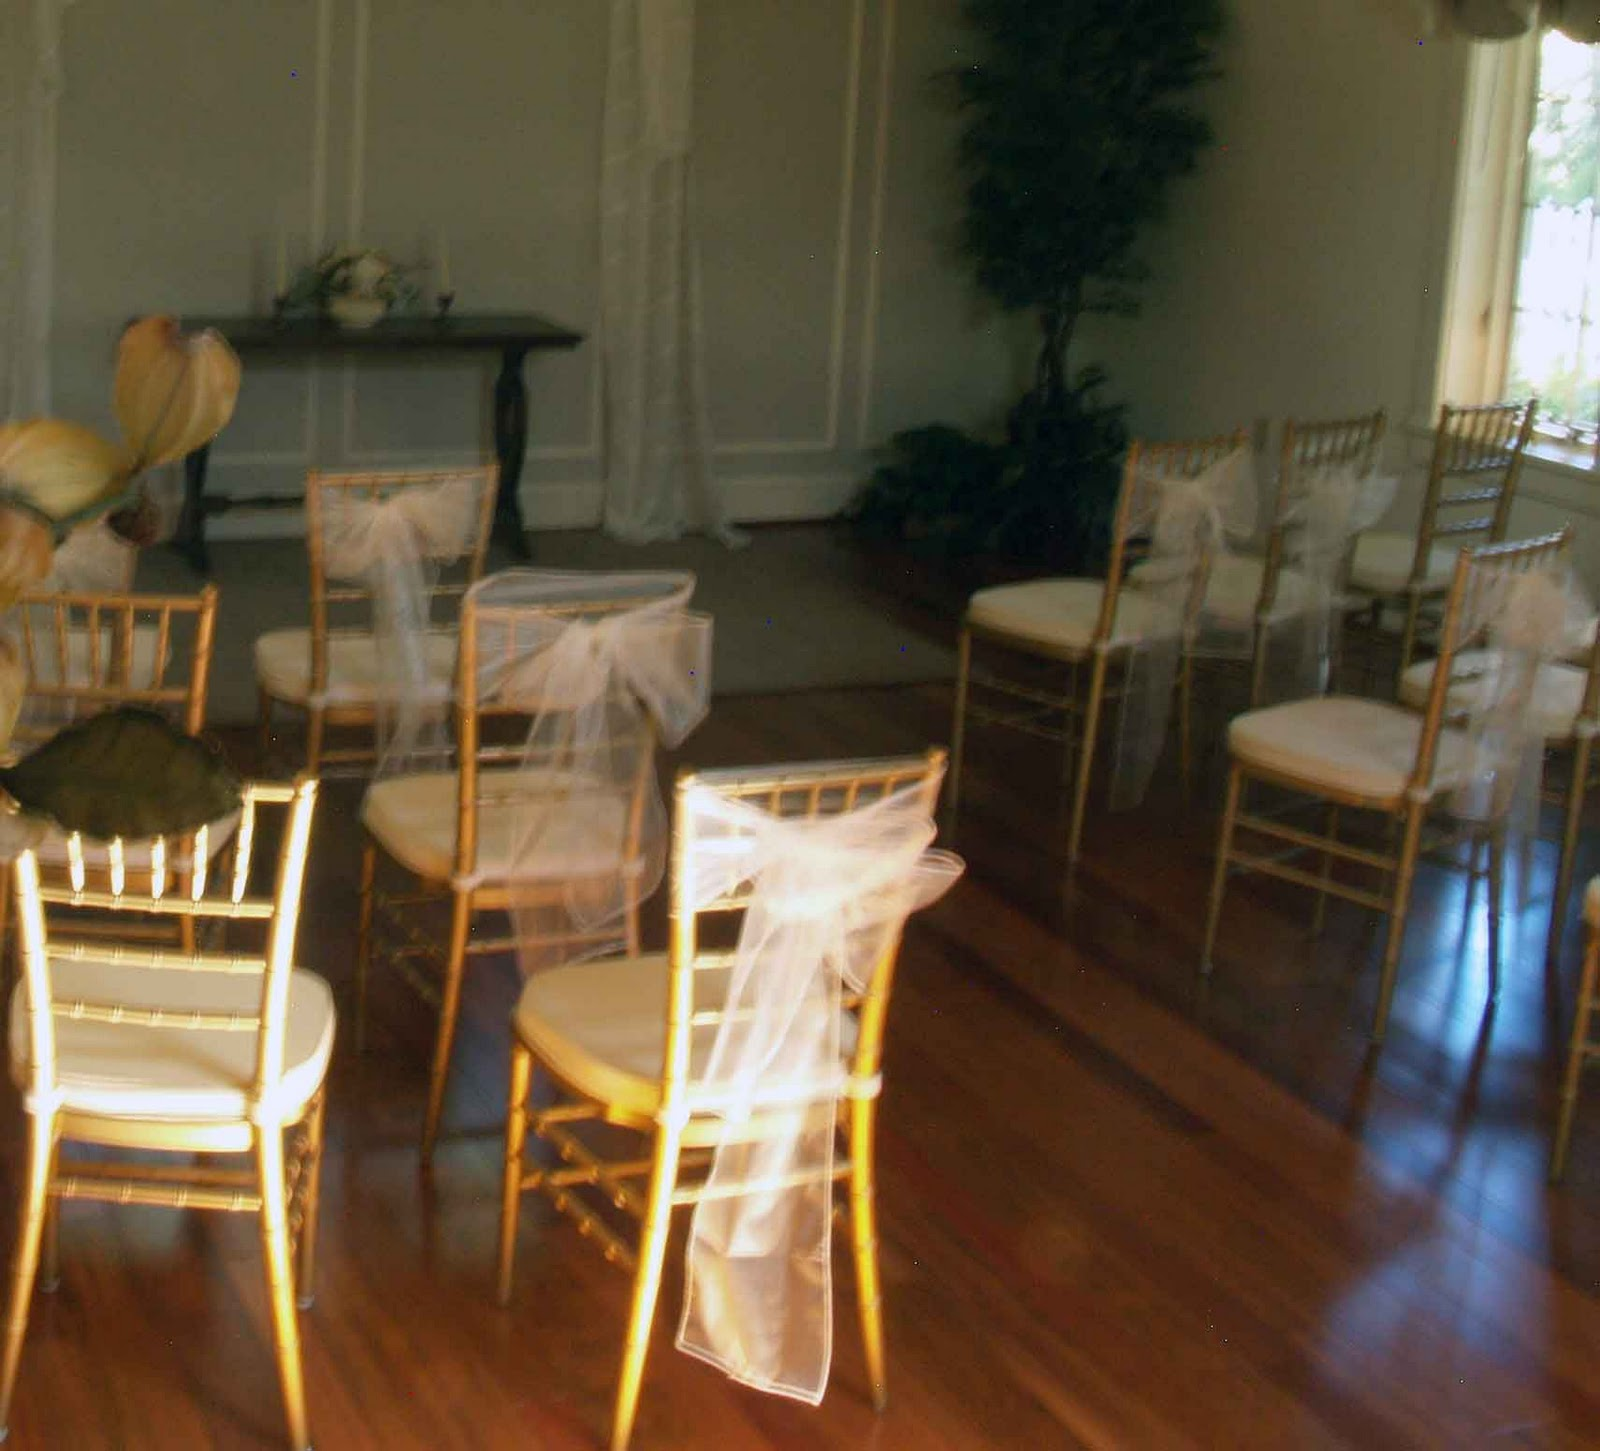 Wedding ceremony chair - These Photos Are From Weddings At The Thomas Birkby House And Wows For Other Suggestions Search Wedding Ceremony Chair Decorations On The Internew Or Ask